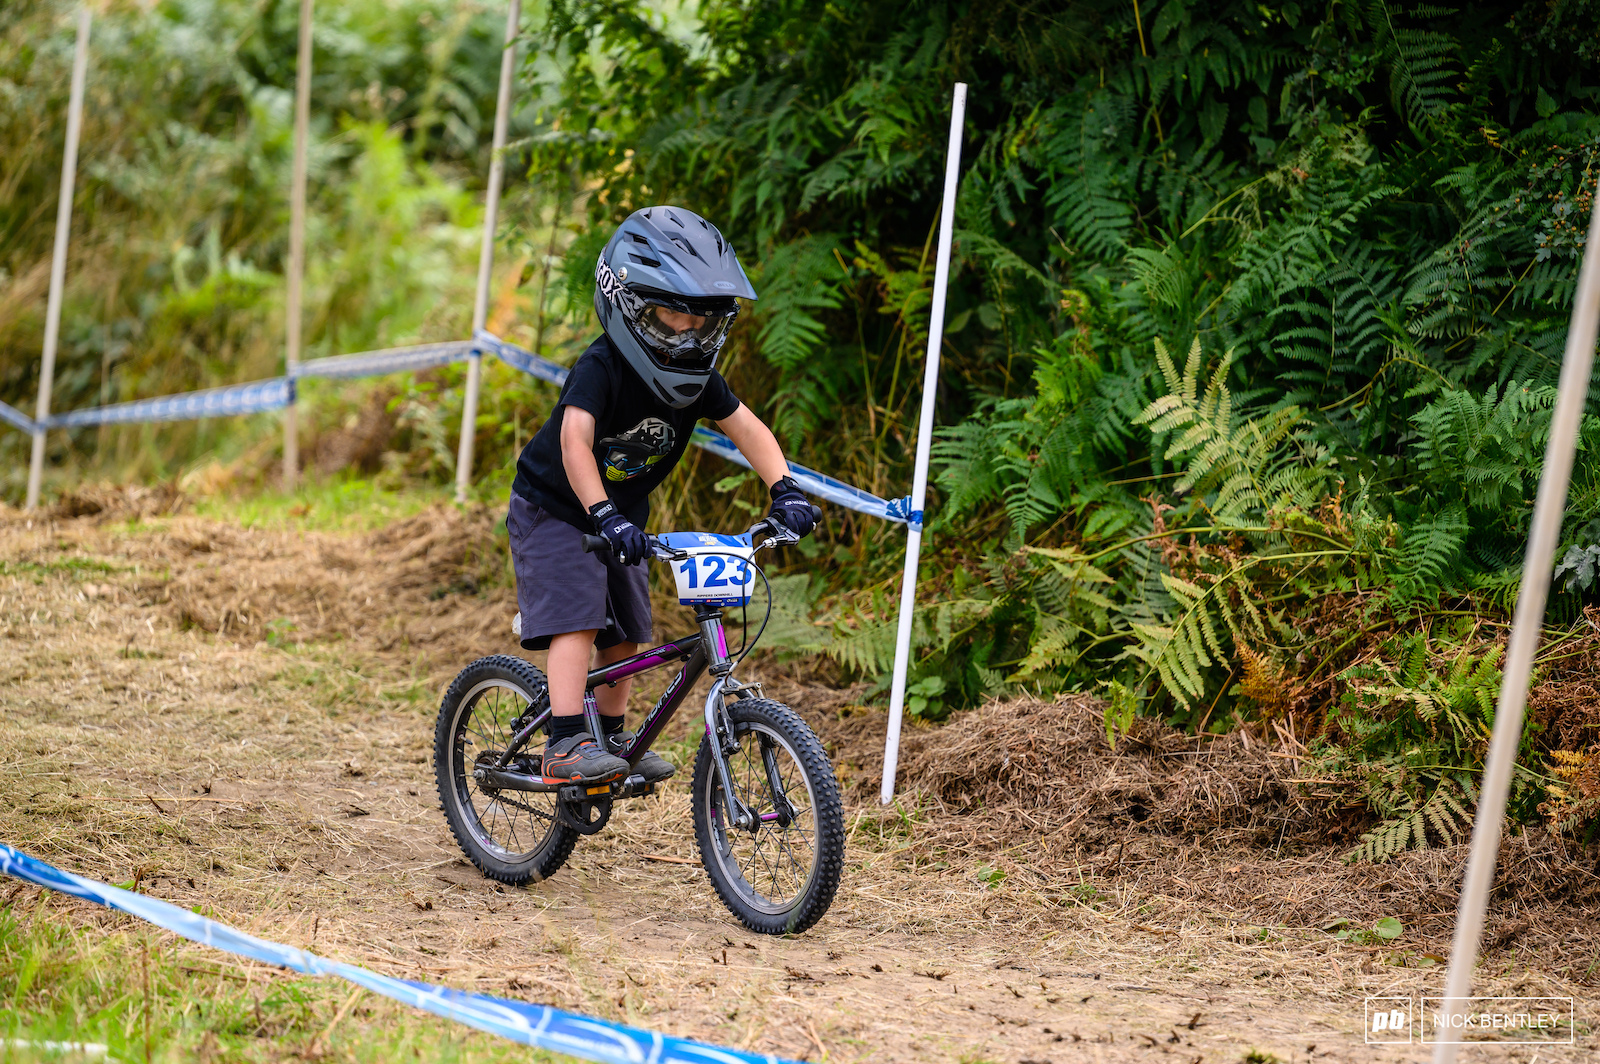 Tackling the track on these tiny bikes was no easy feat